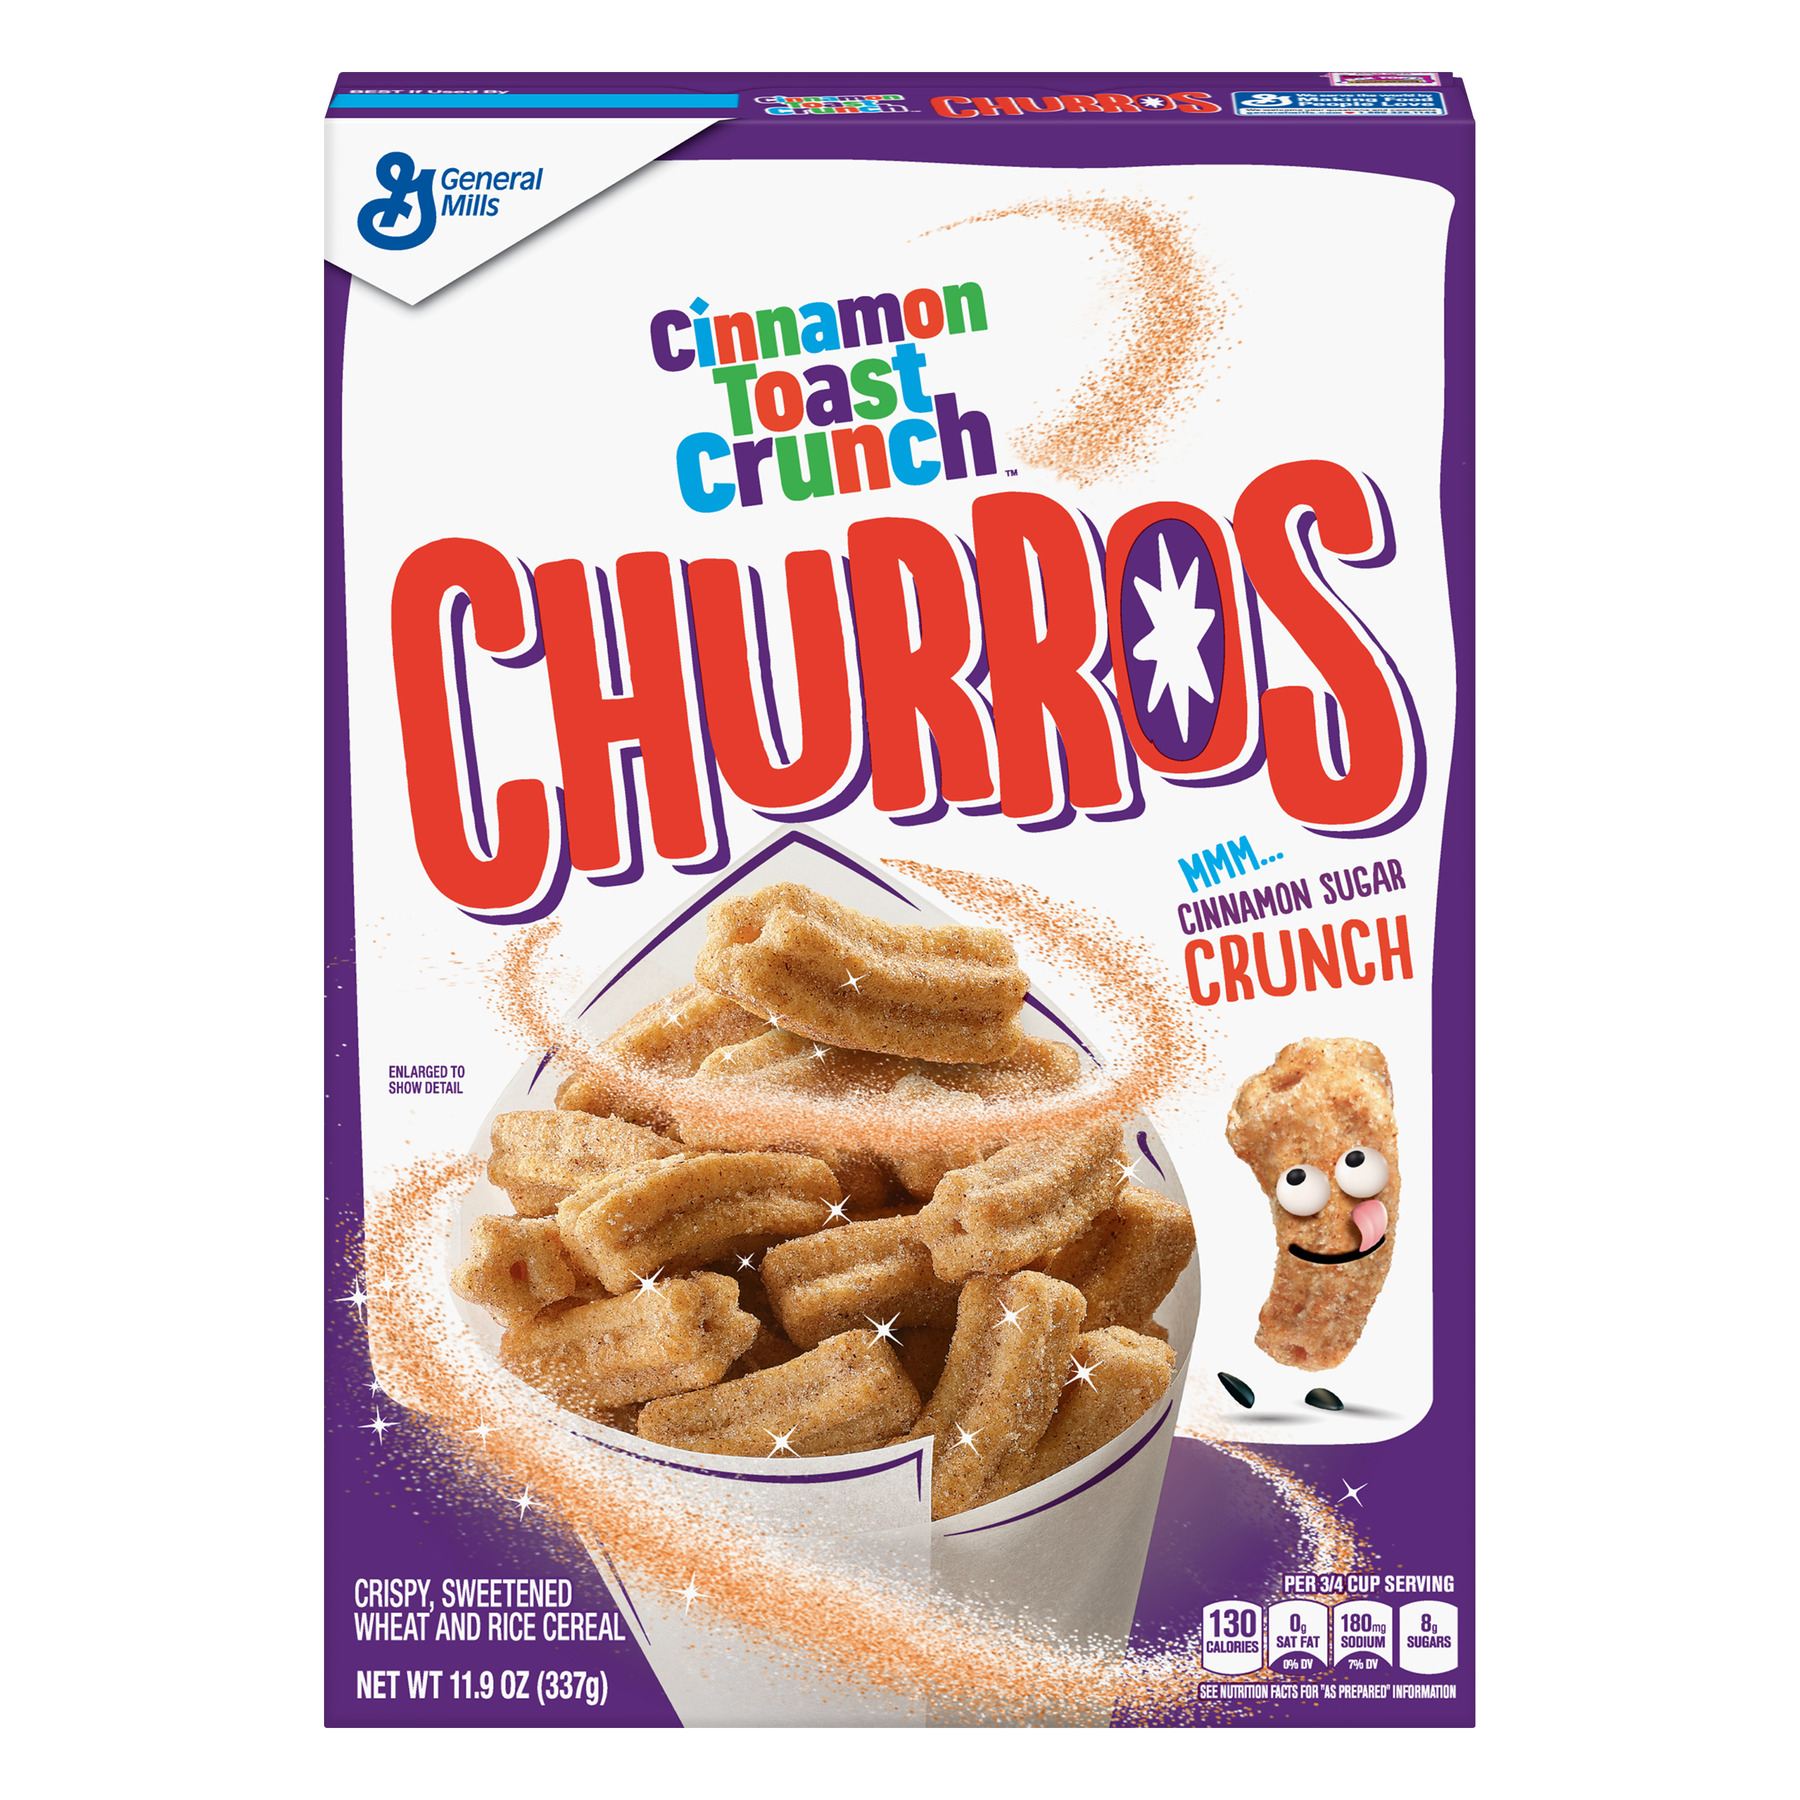 Churros Cinnamon Toast Crunch Cereal, 11.9 OZ